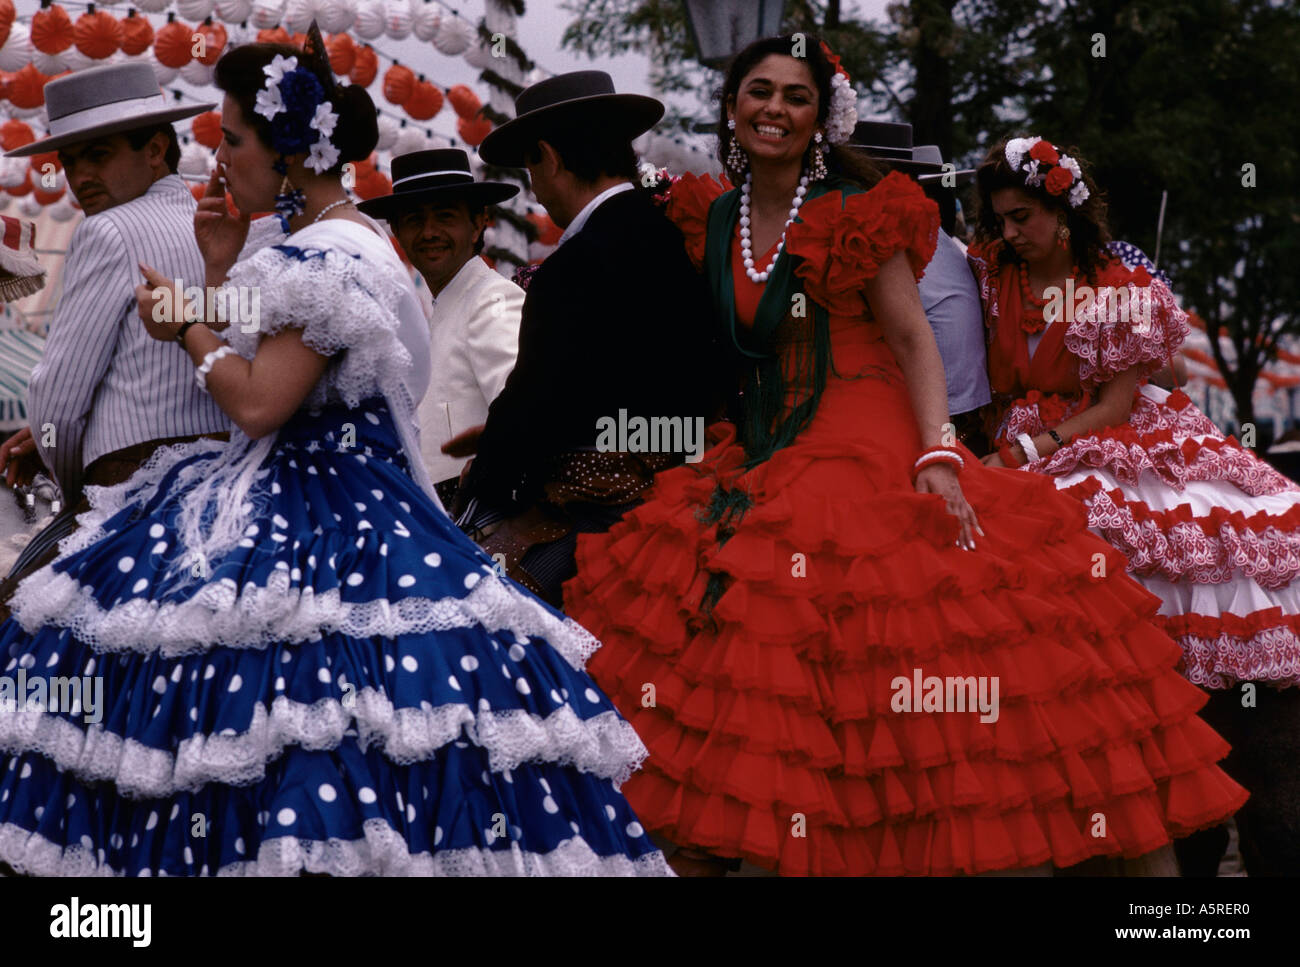 6727655c1daa SEVILLE FAIR, MEN IN TRADITIONAL SPANISH STYLE RIDING CLOTHES WOMEN IN FLAMENCO  DRESSES RIDE TWO UP ON HORSES, SEVILLE, SPAIN